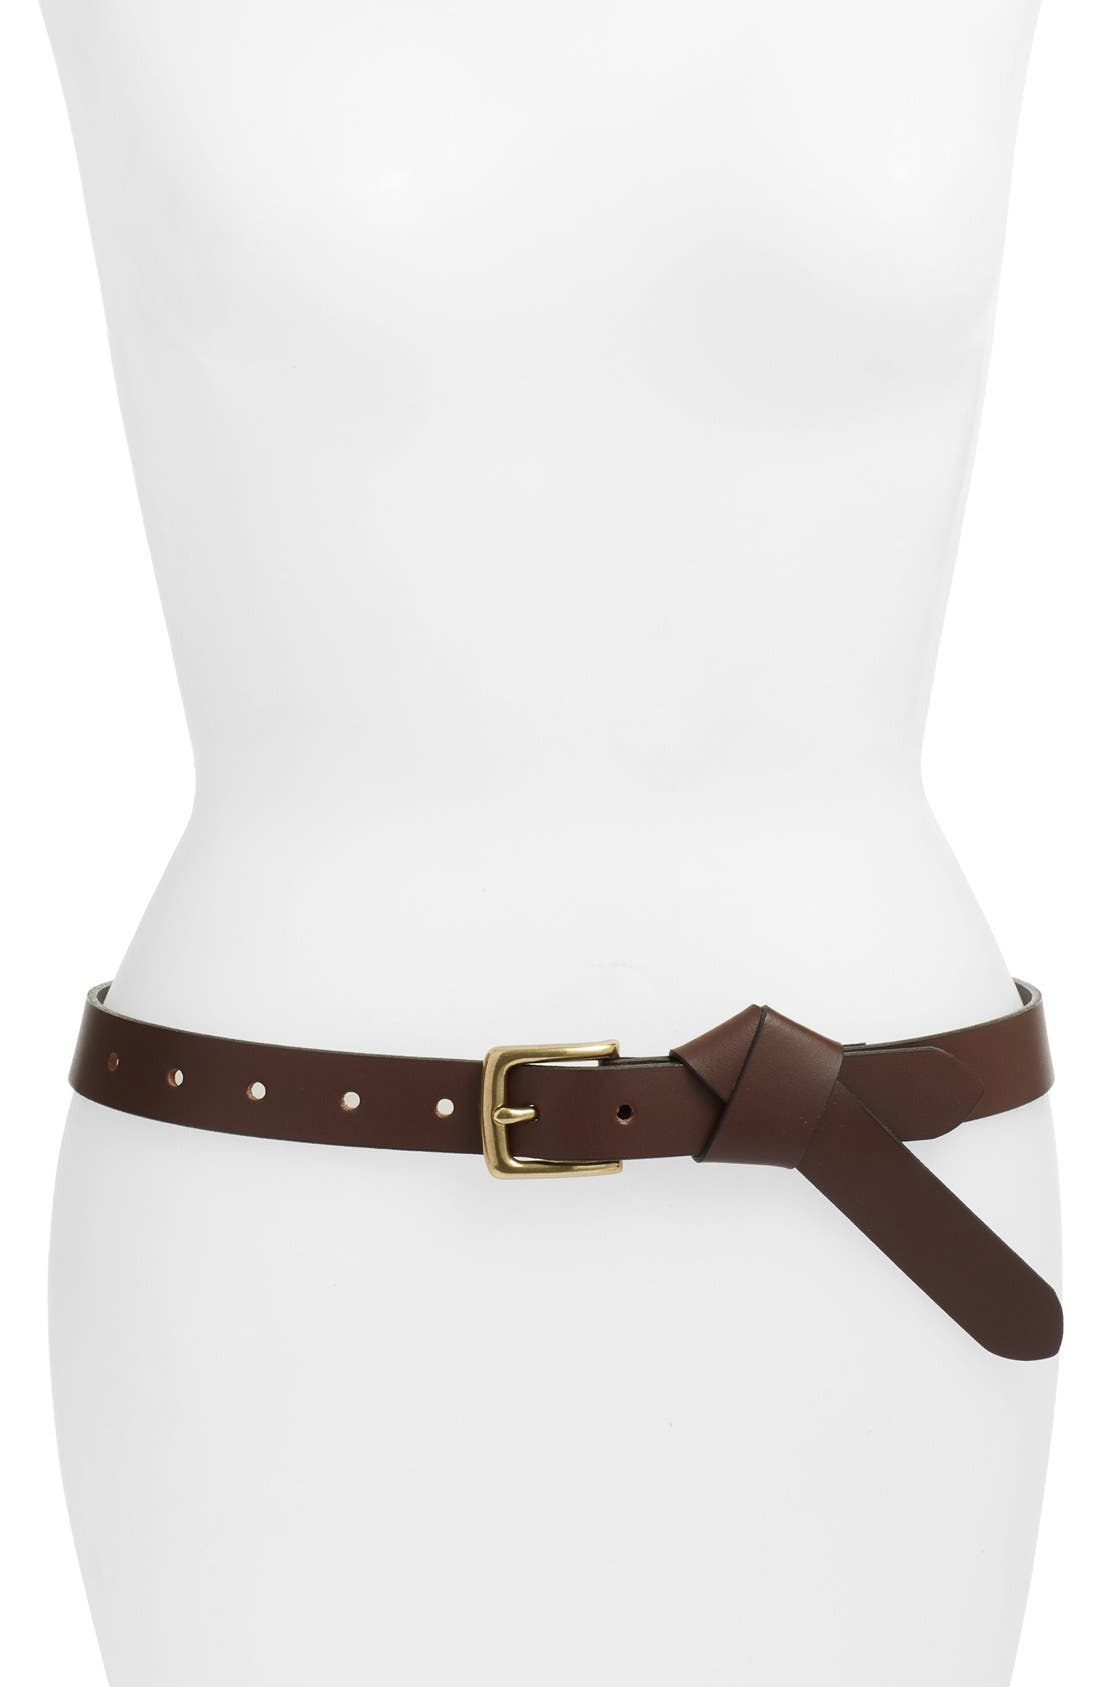 TREASURE & BOND Treasure&Bond Knotted Leather Belt, Main, color, 210